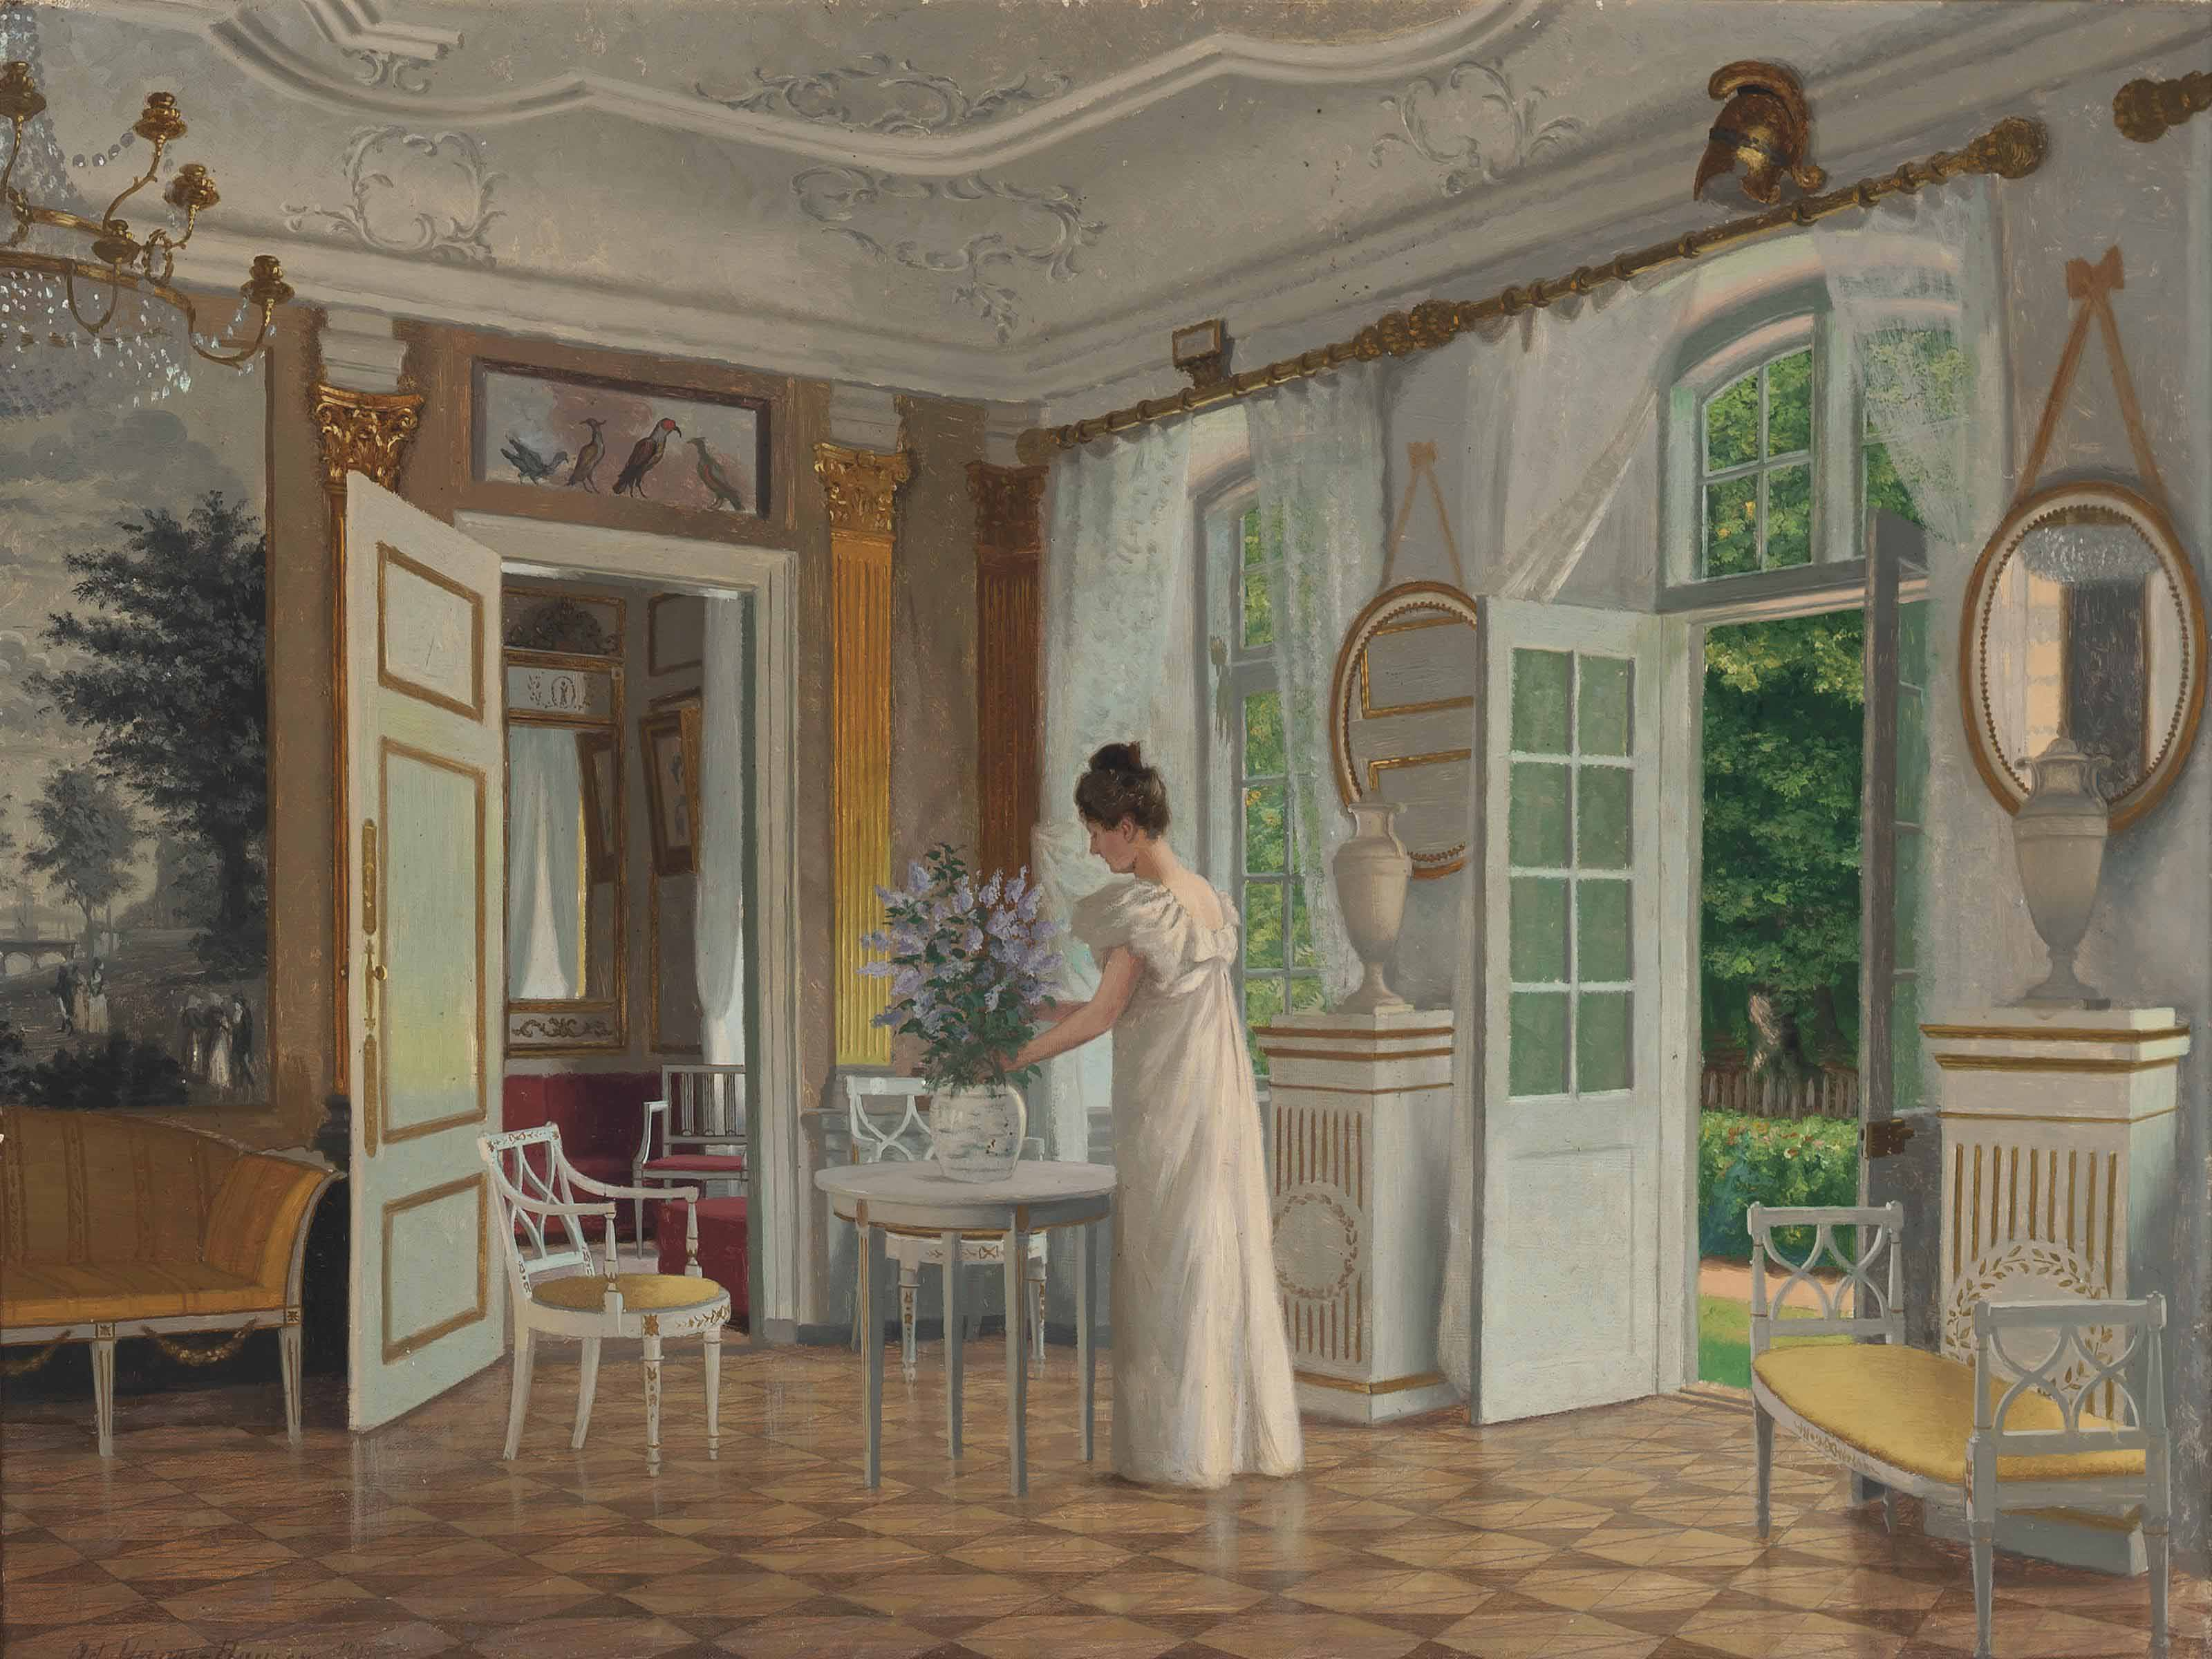 A lady in a sunlit interior